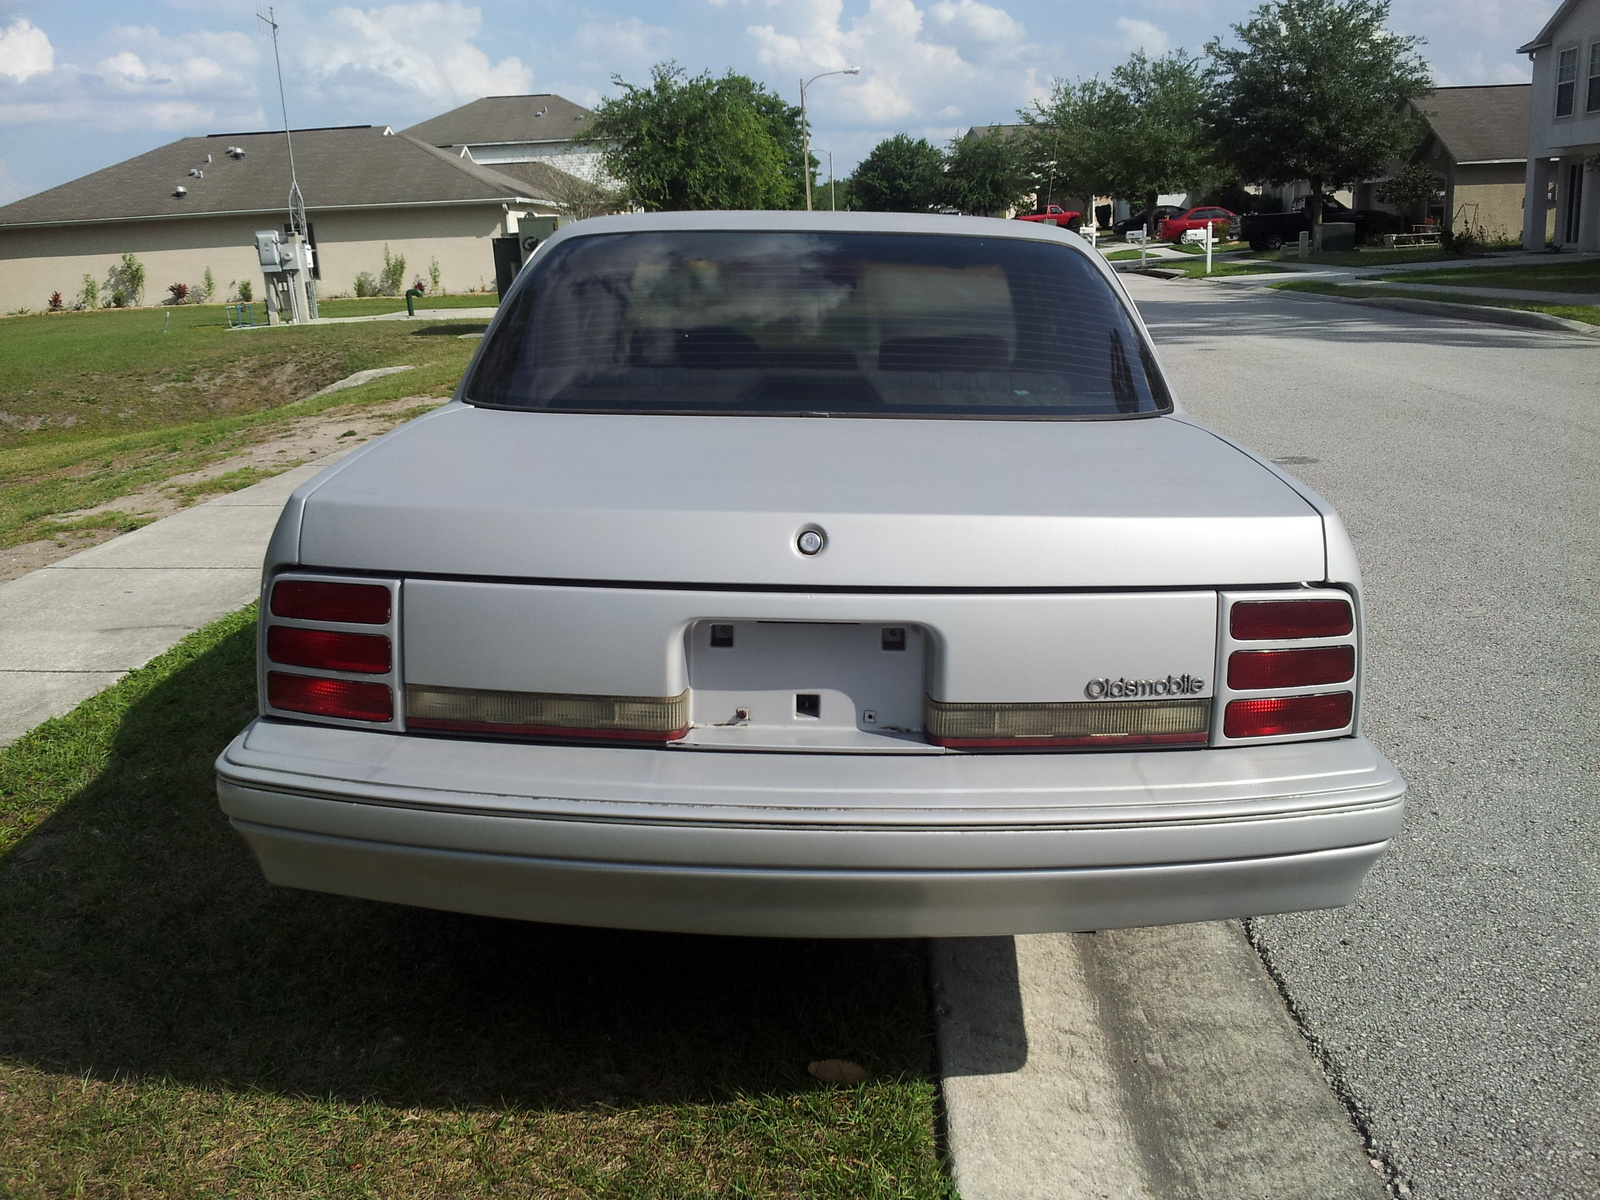 Picture of 1993 Oldsmobile Cutlass Ciera 4 Dr S Sedan